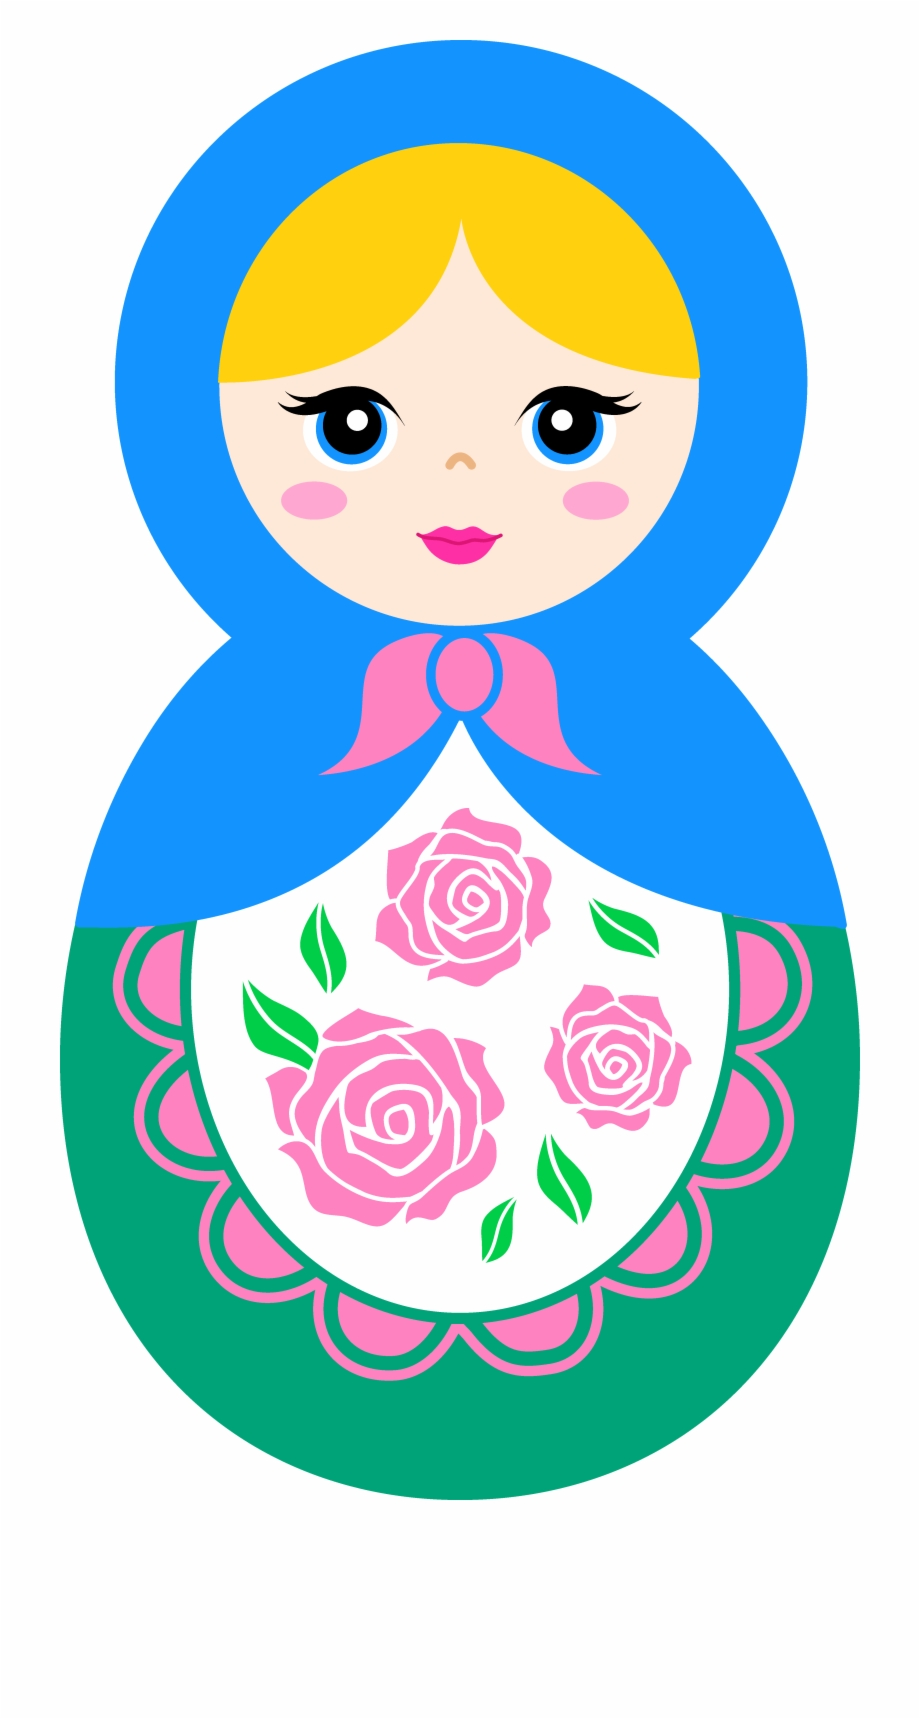 Scary russian doll black and white clipart graphic library library Russian Doll Clipart - Matryoshka Doll Clipart {#1952269 ... graphic library library